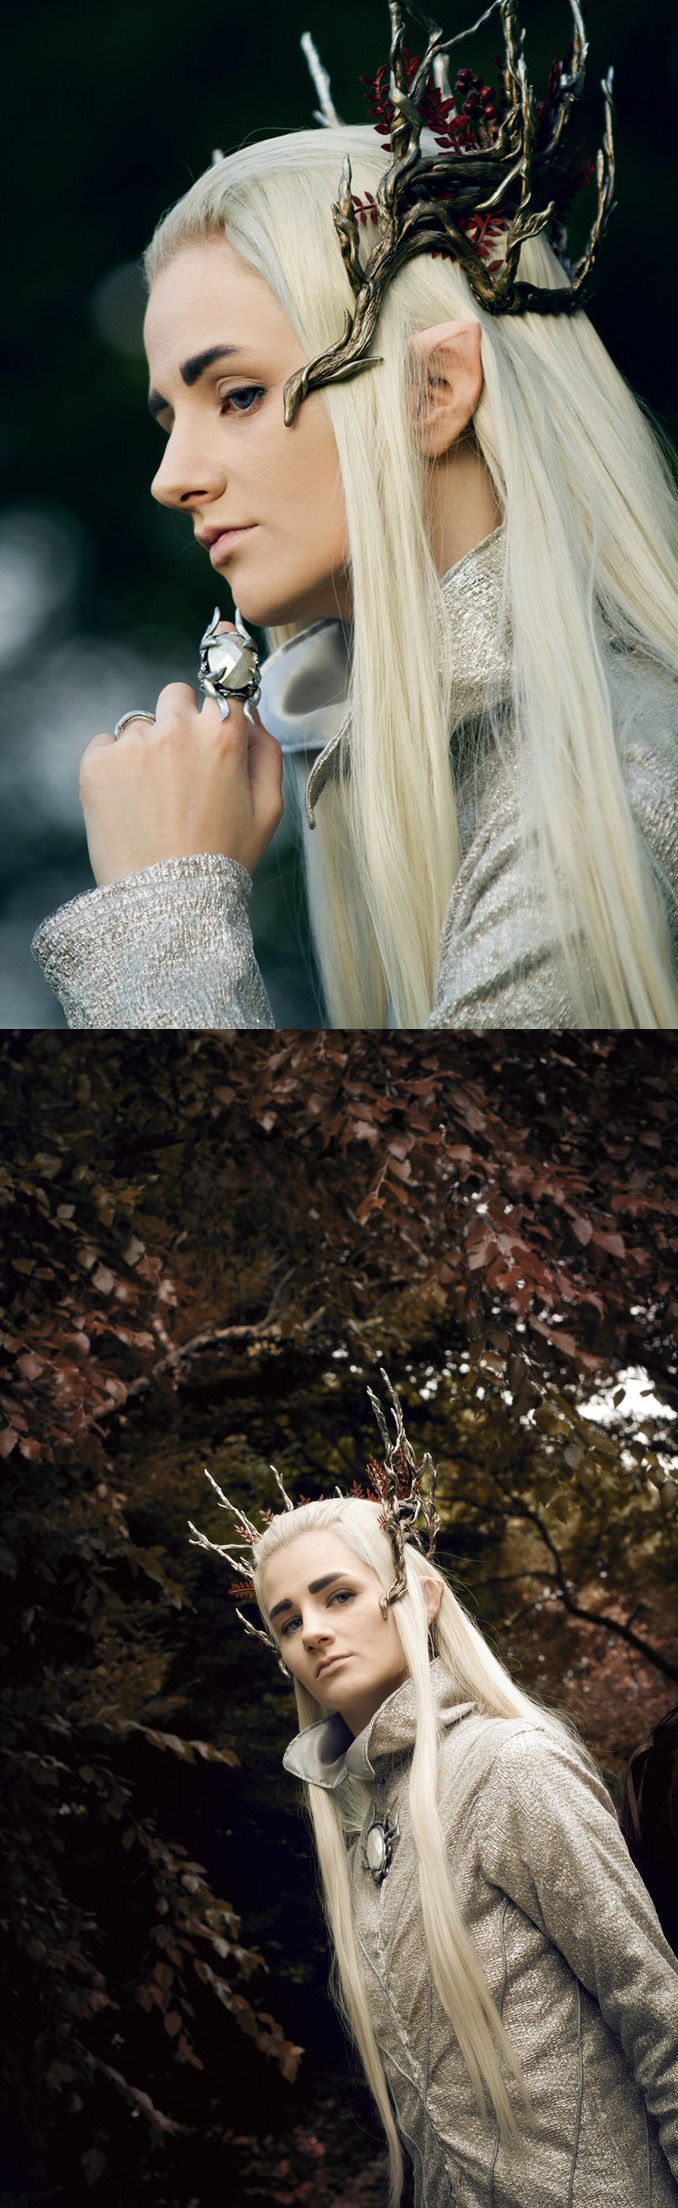 Thranduil, Elven King of Mirkwood - The Hobbit- wow this costume is amazing! *-*